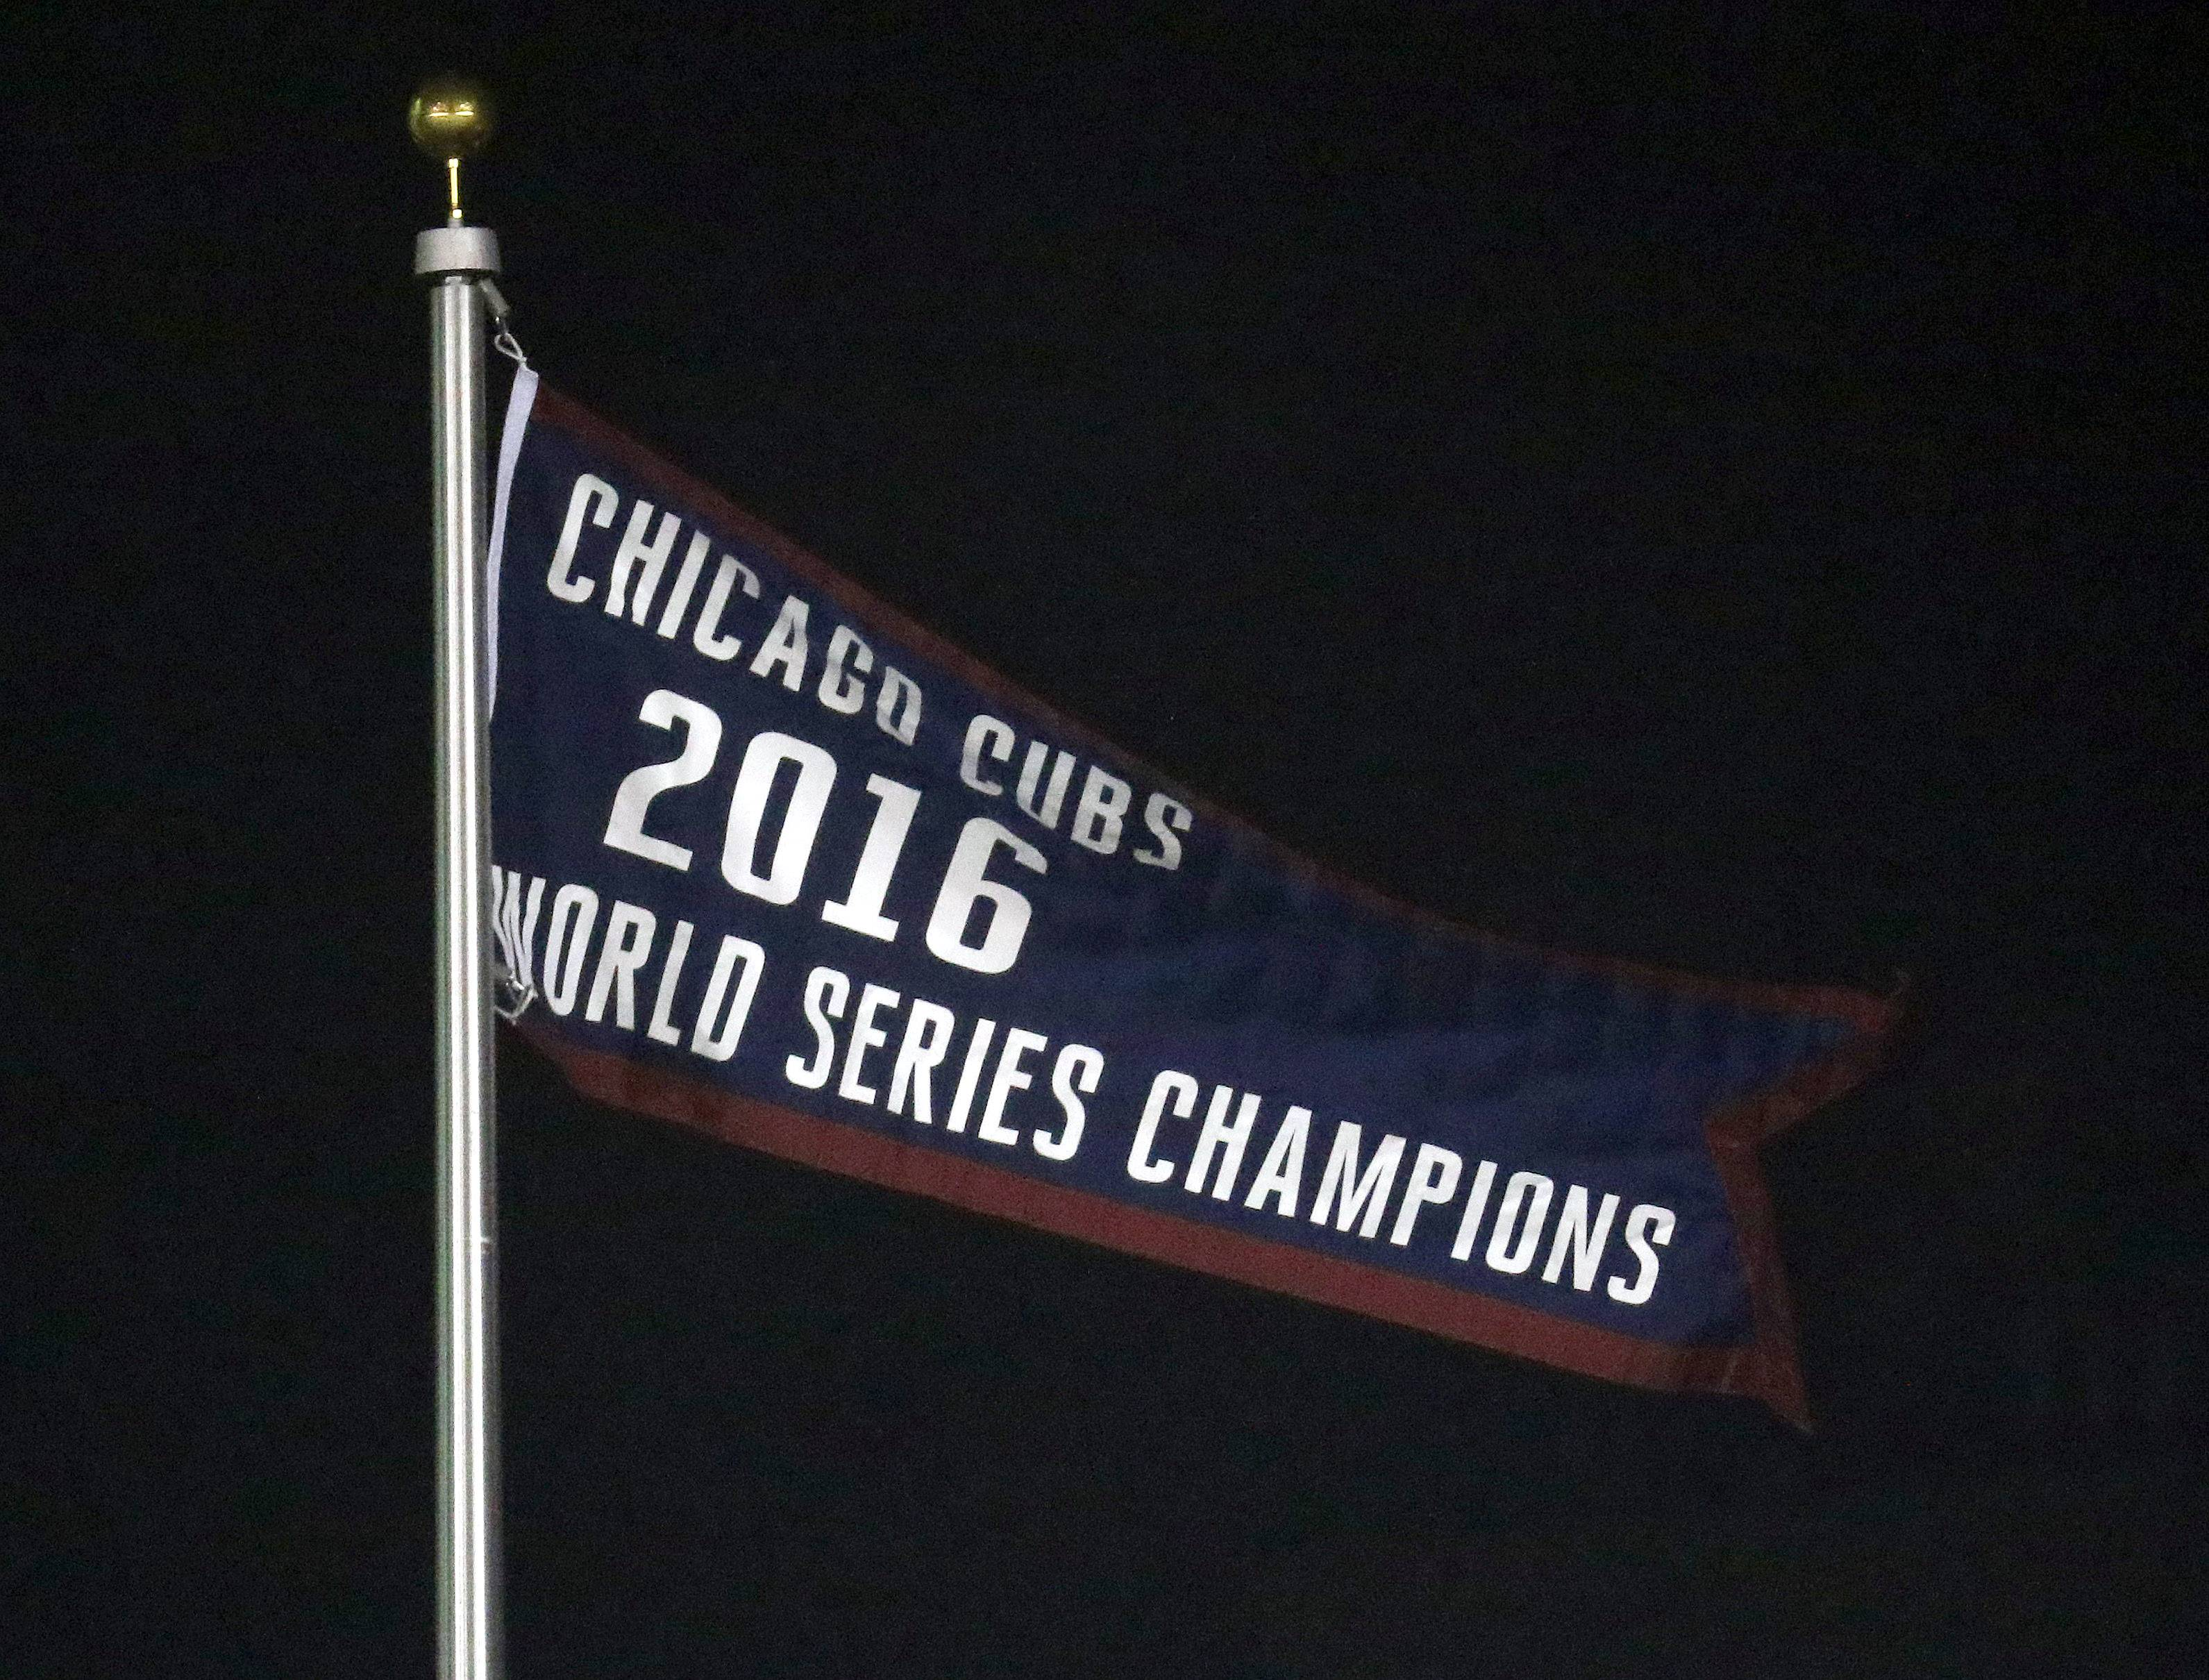 City allows Chicago Cubs to play a Friday night game